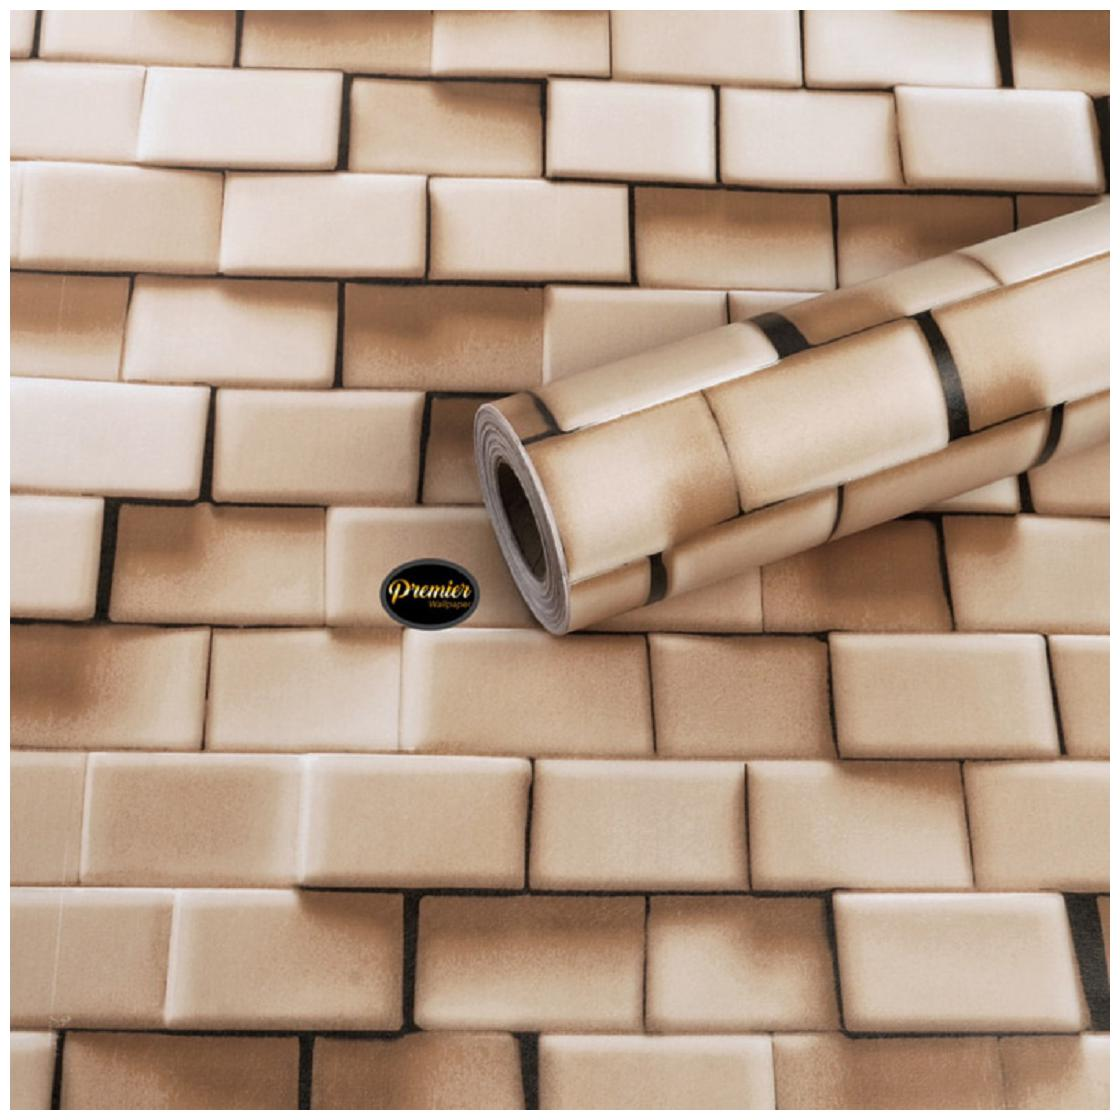 Jaamso Royals Brick Stone Peel and Stick Wallpaper;Wall Poster;Wall Sticker;PVC Self Adhesive for Bedrooms;Living Room;Hall;Play Room (100 * 45 CM)